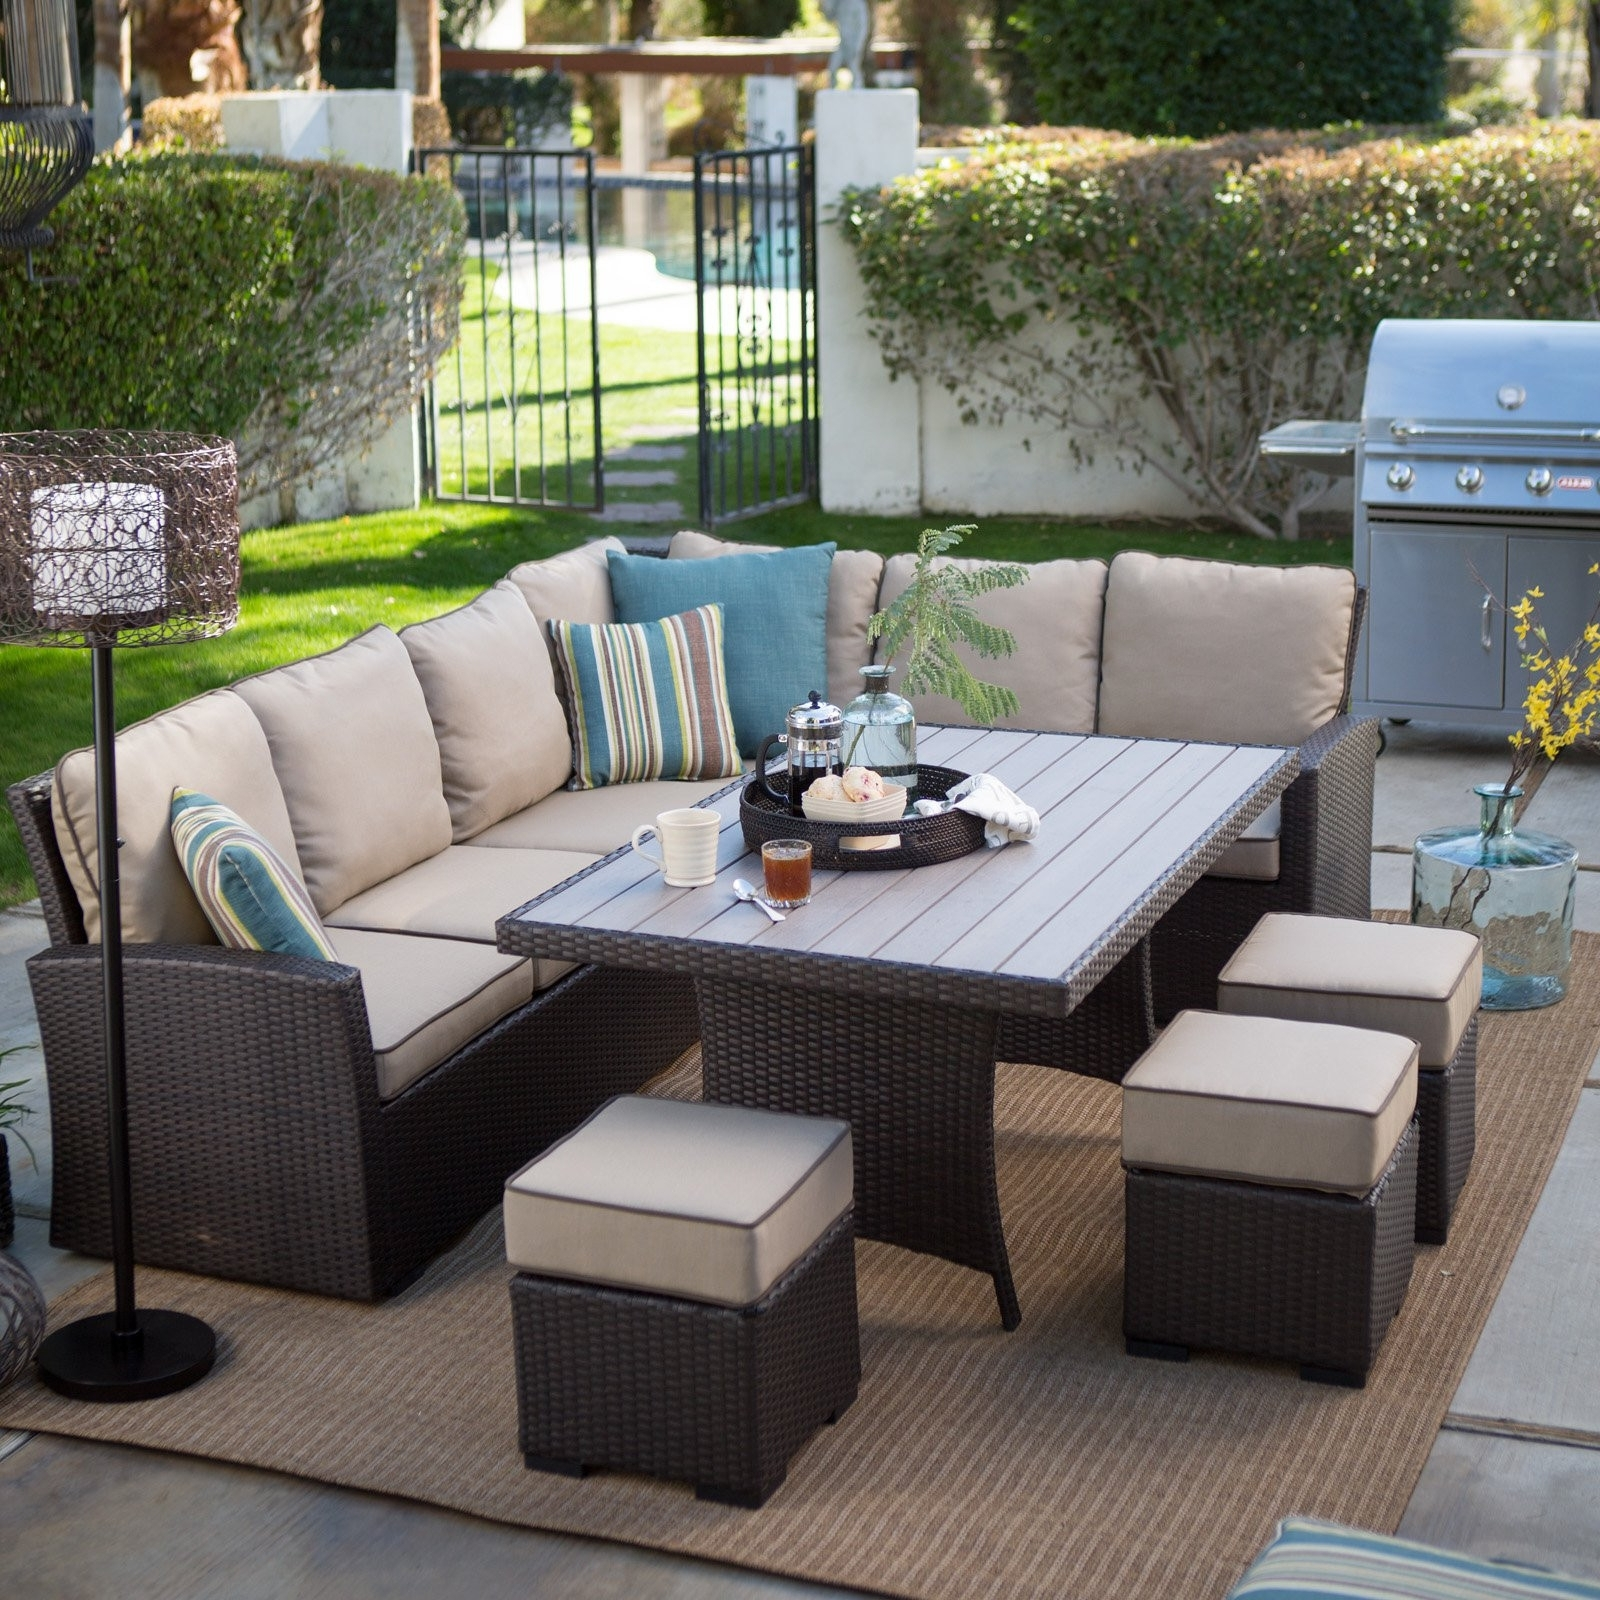 Small Patio Conversation Sets Regarding Well Liked 30 Fresh Small Outdoor Furniture Set Ideas – Onionskeen (View 16 of 20)